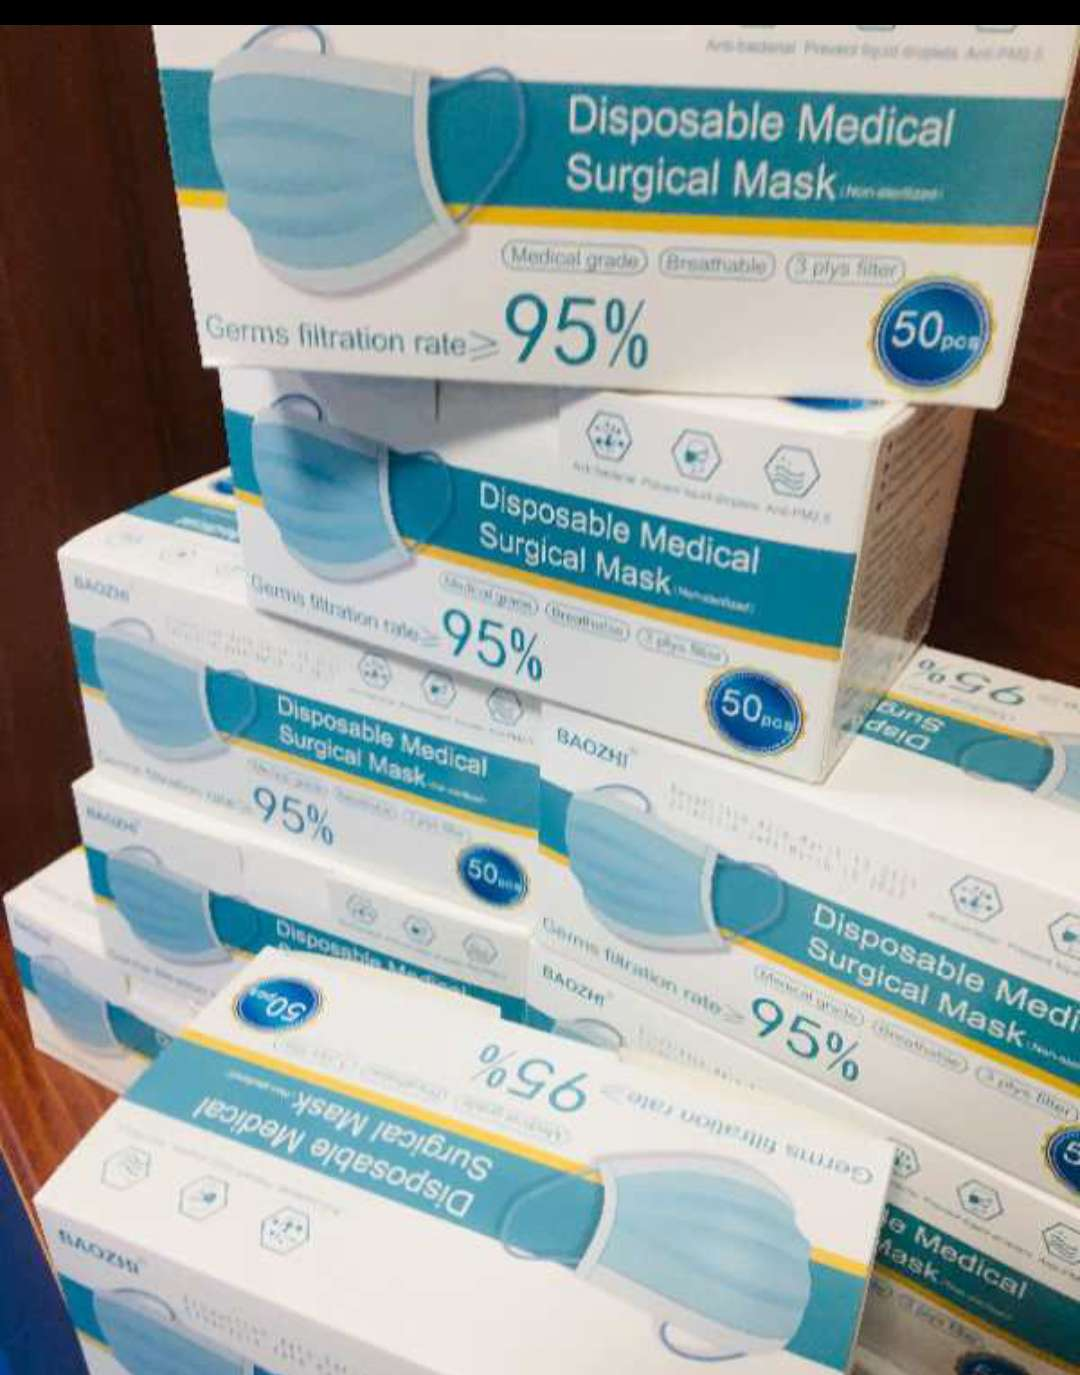 Surgical mask in stock